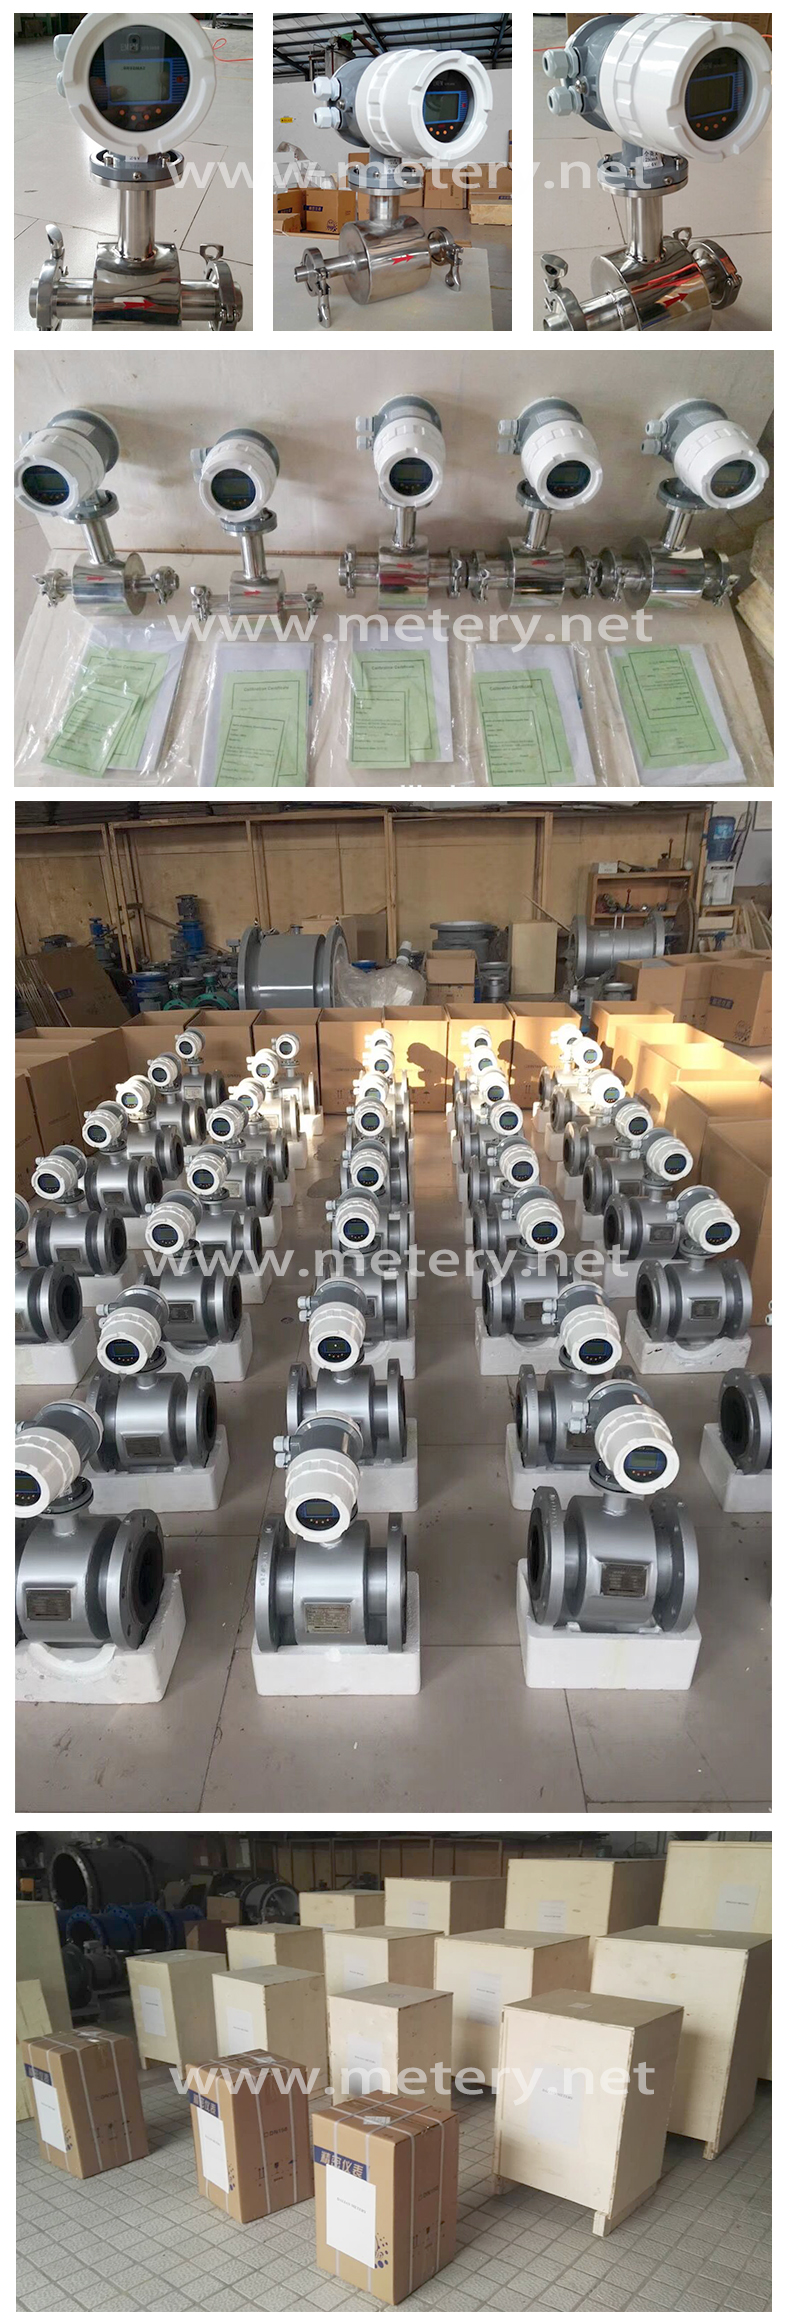 Low price water electromagnetic flowmeter